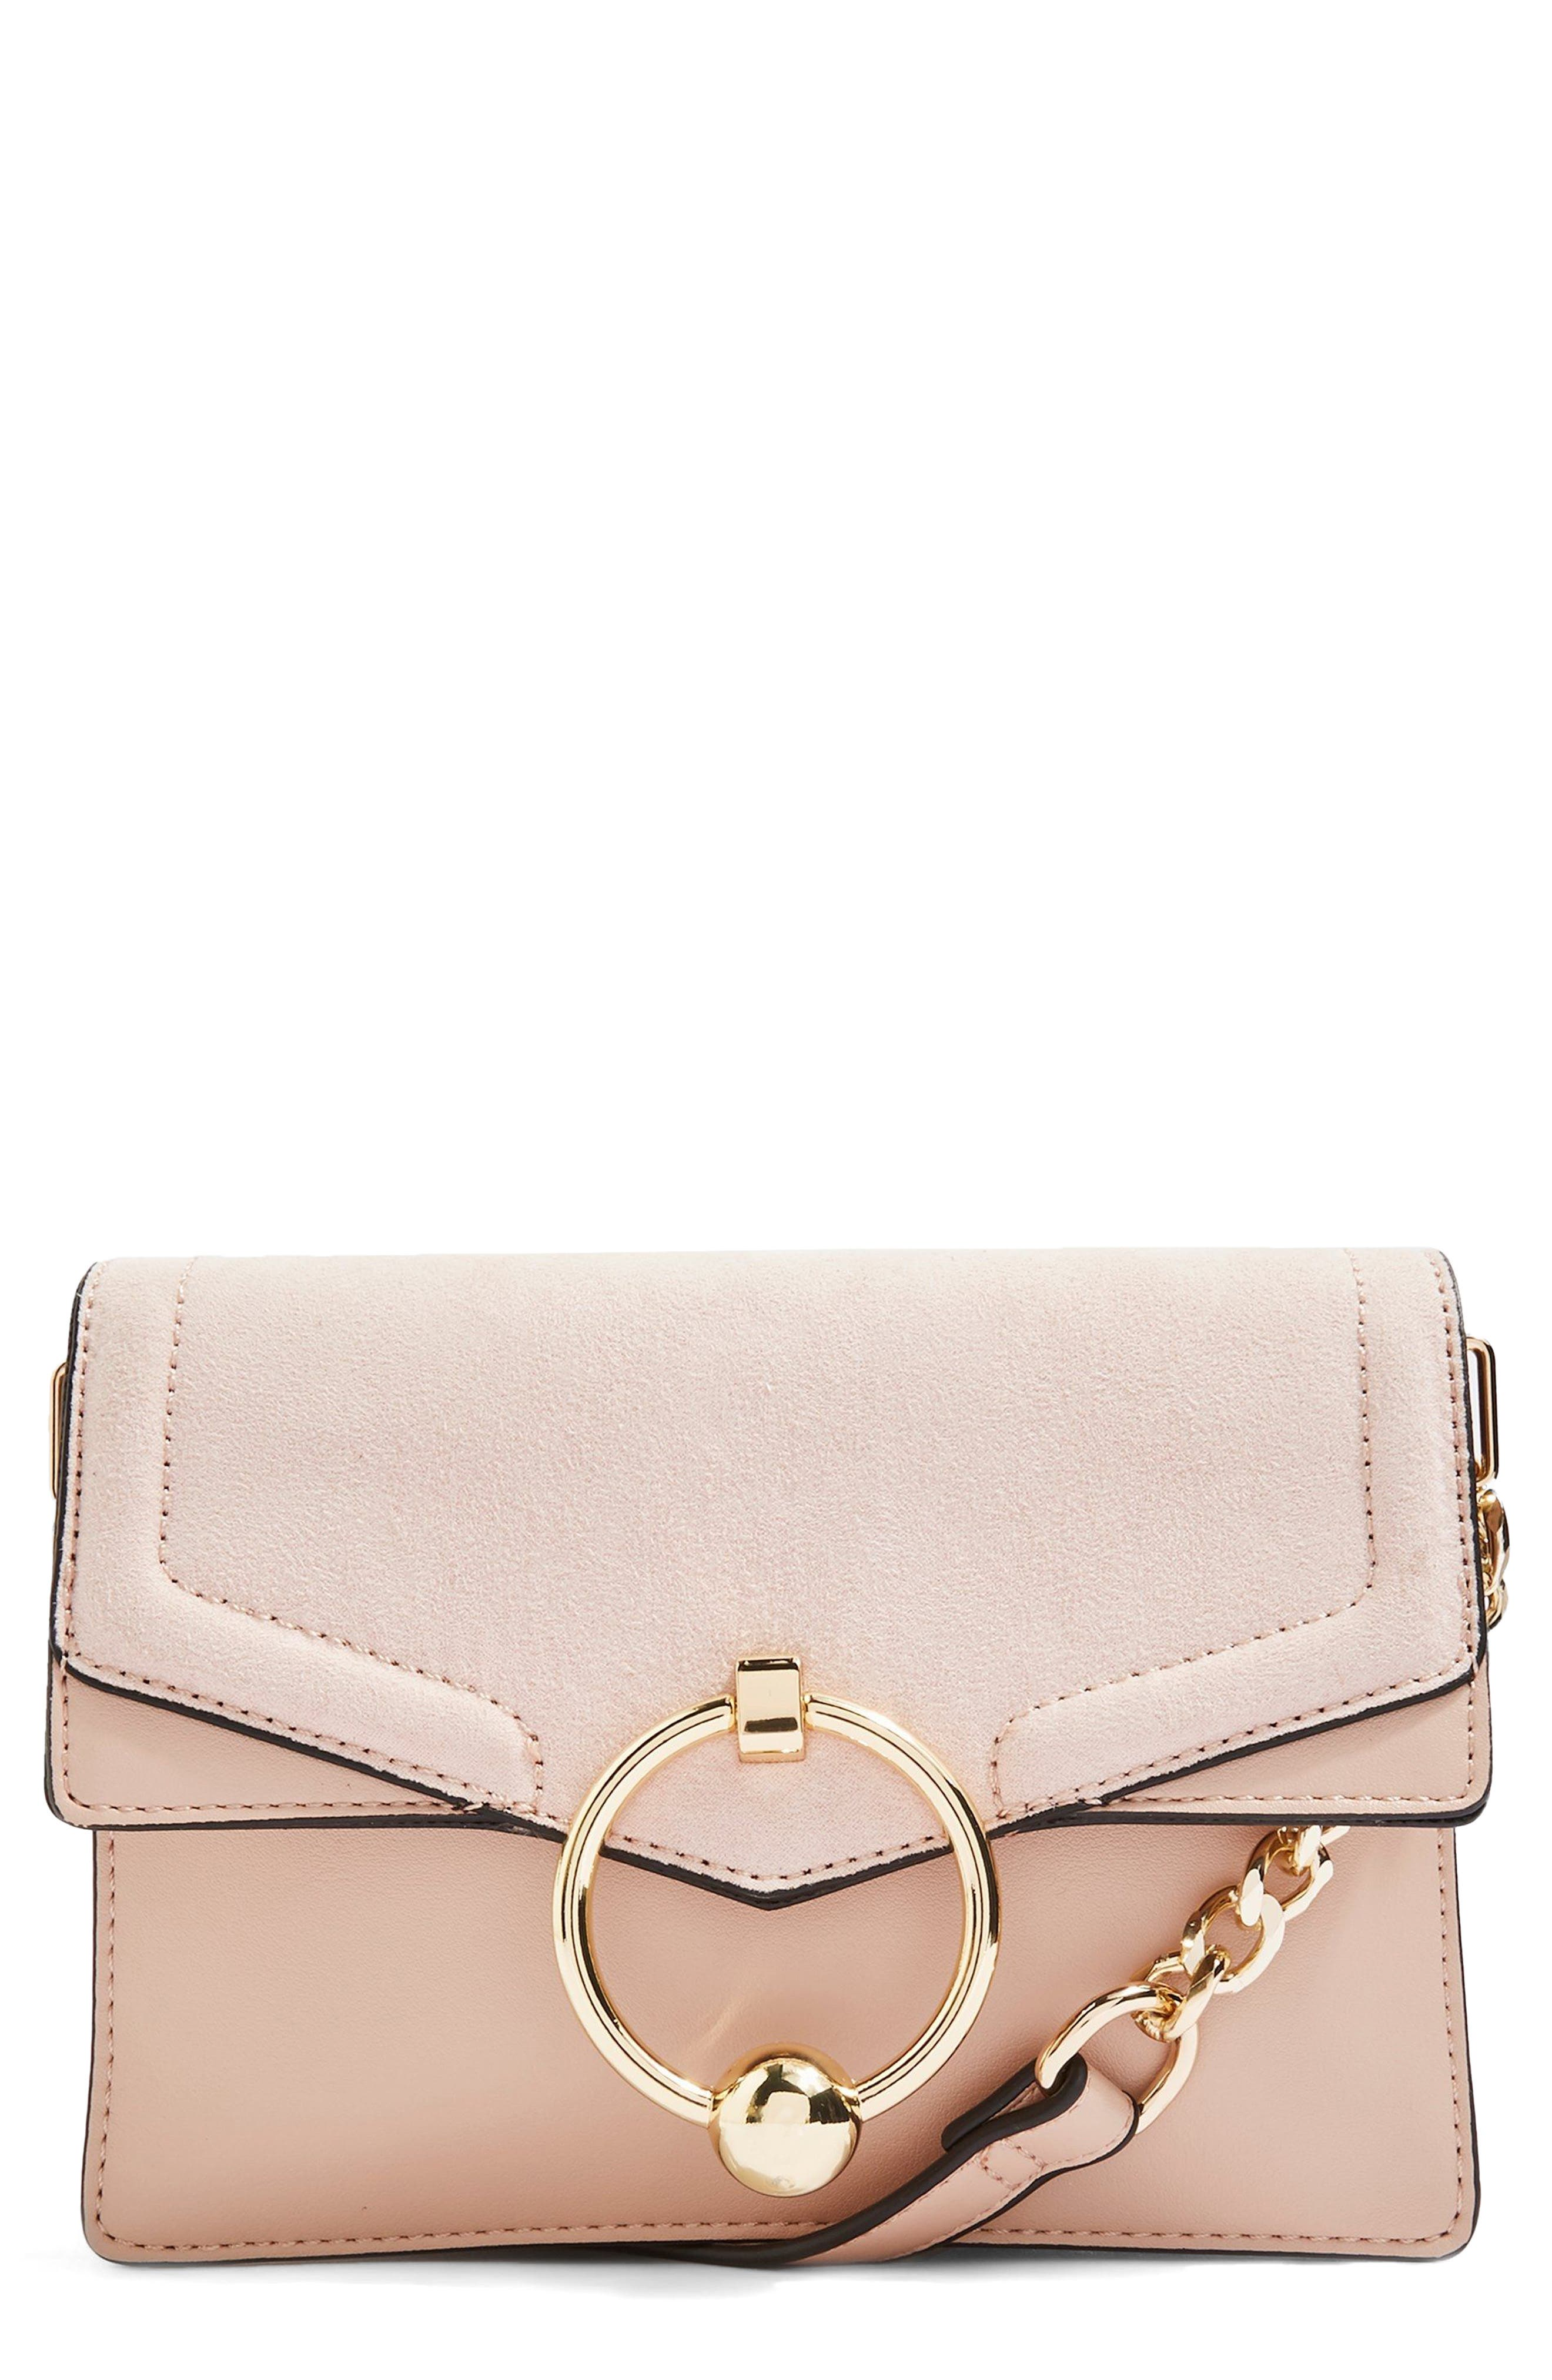 Seline Faux Leather Crossbody Bag,                             Main thumbnail 1, color,                             250